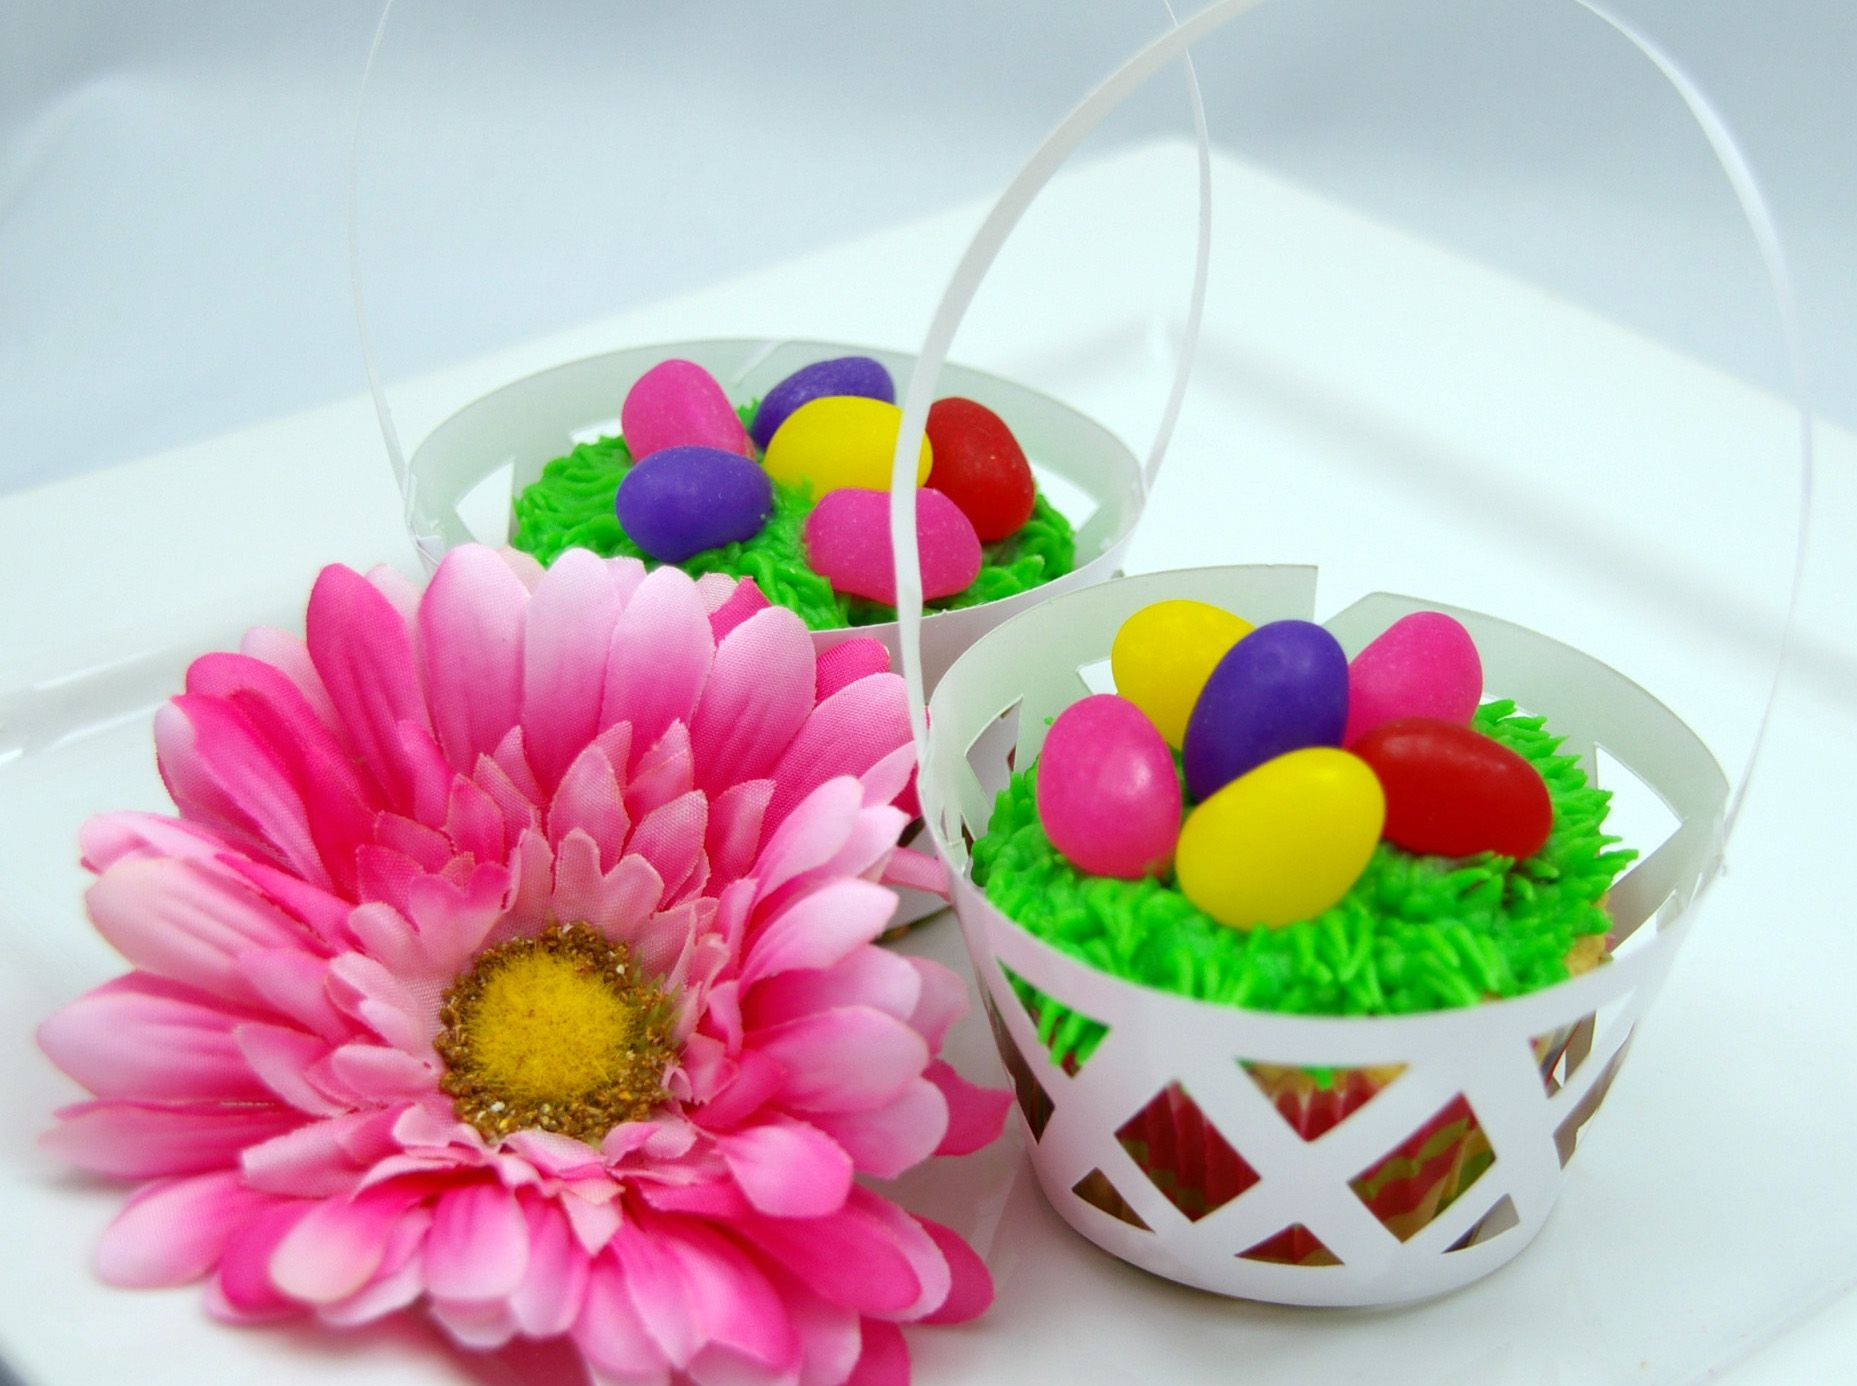 Easter cupcakes from windells chocolates in london